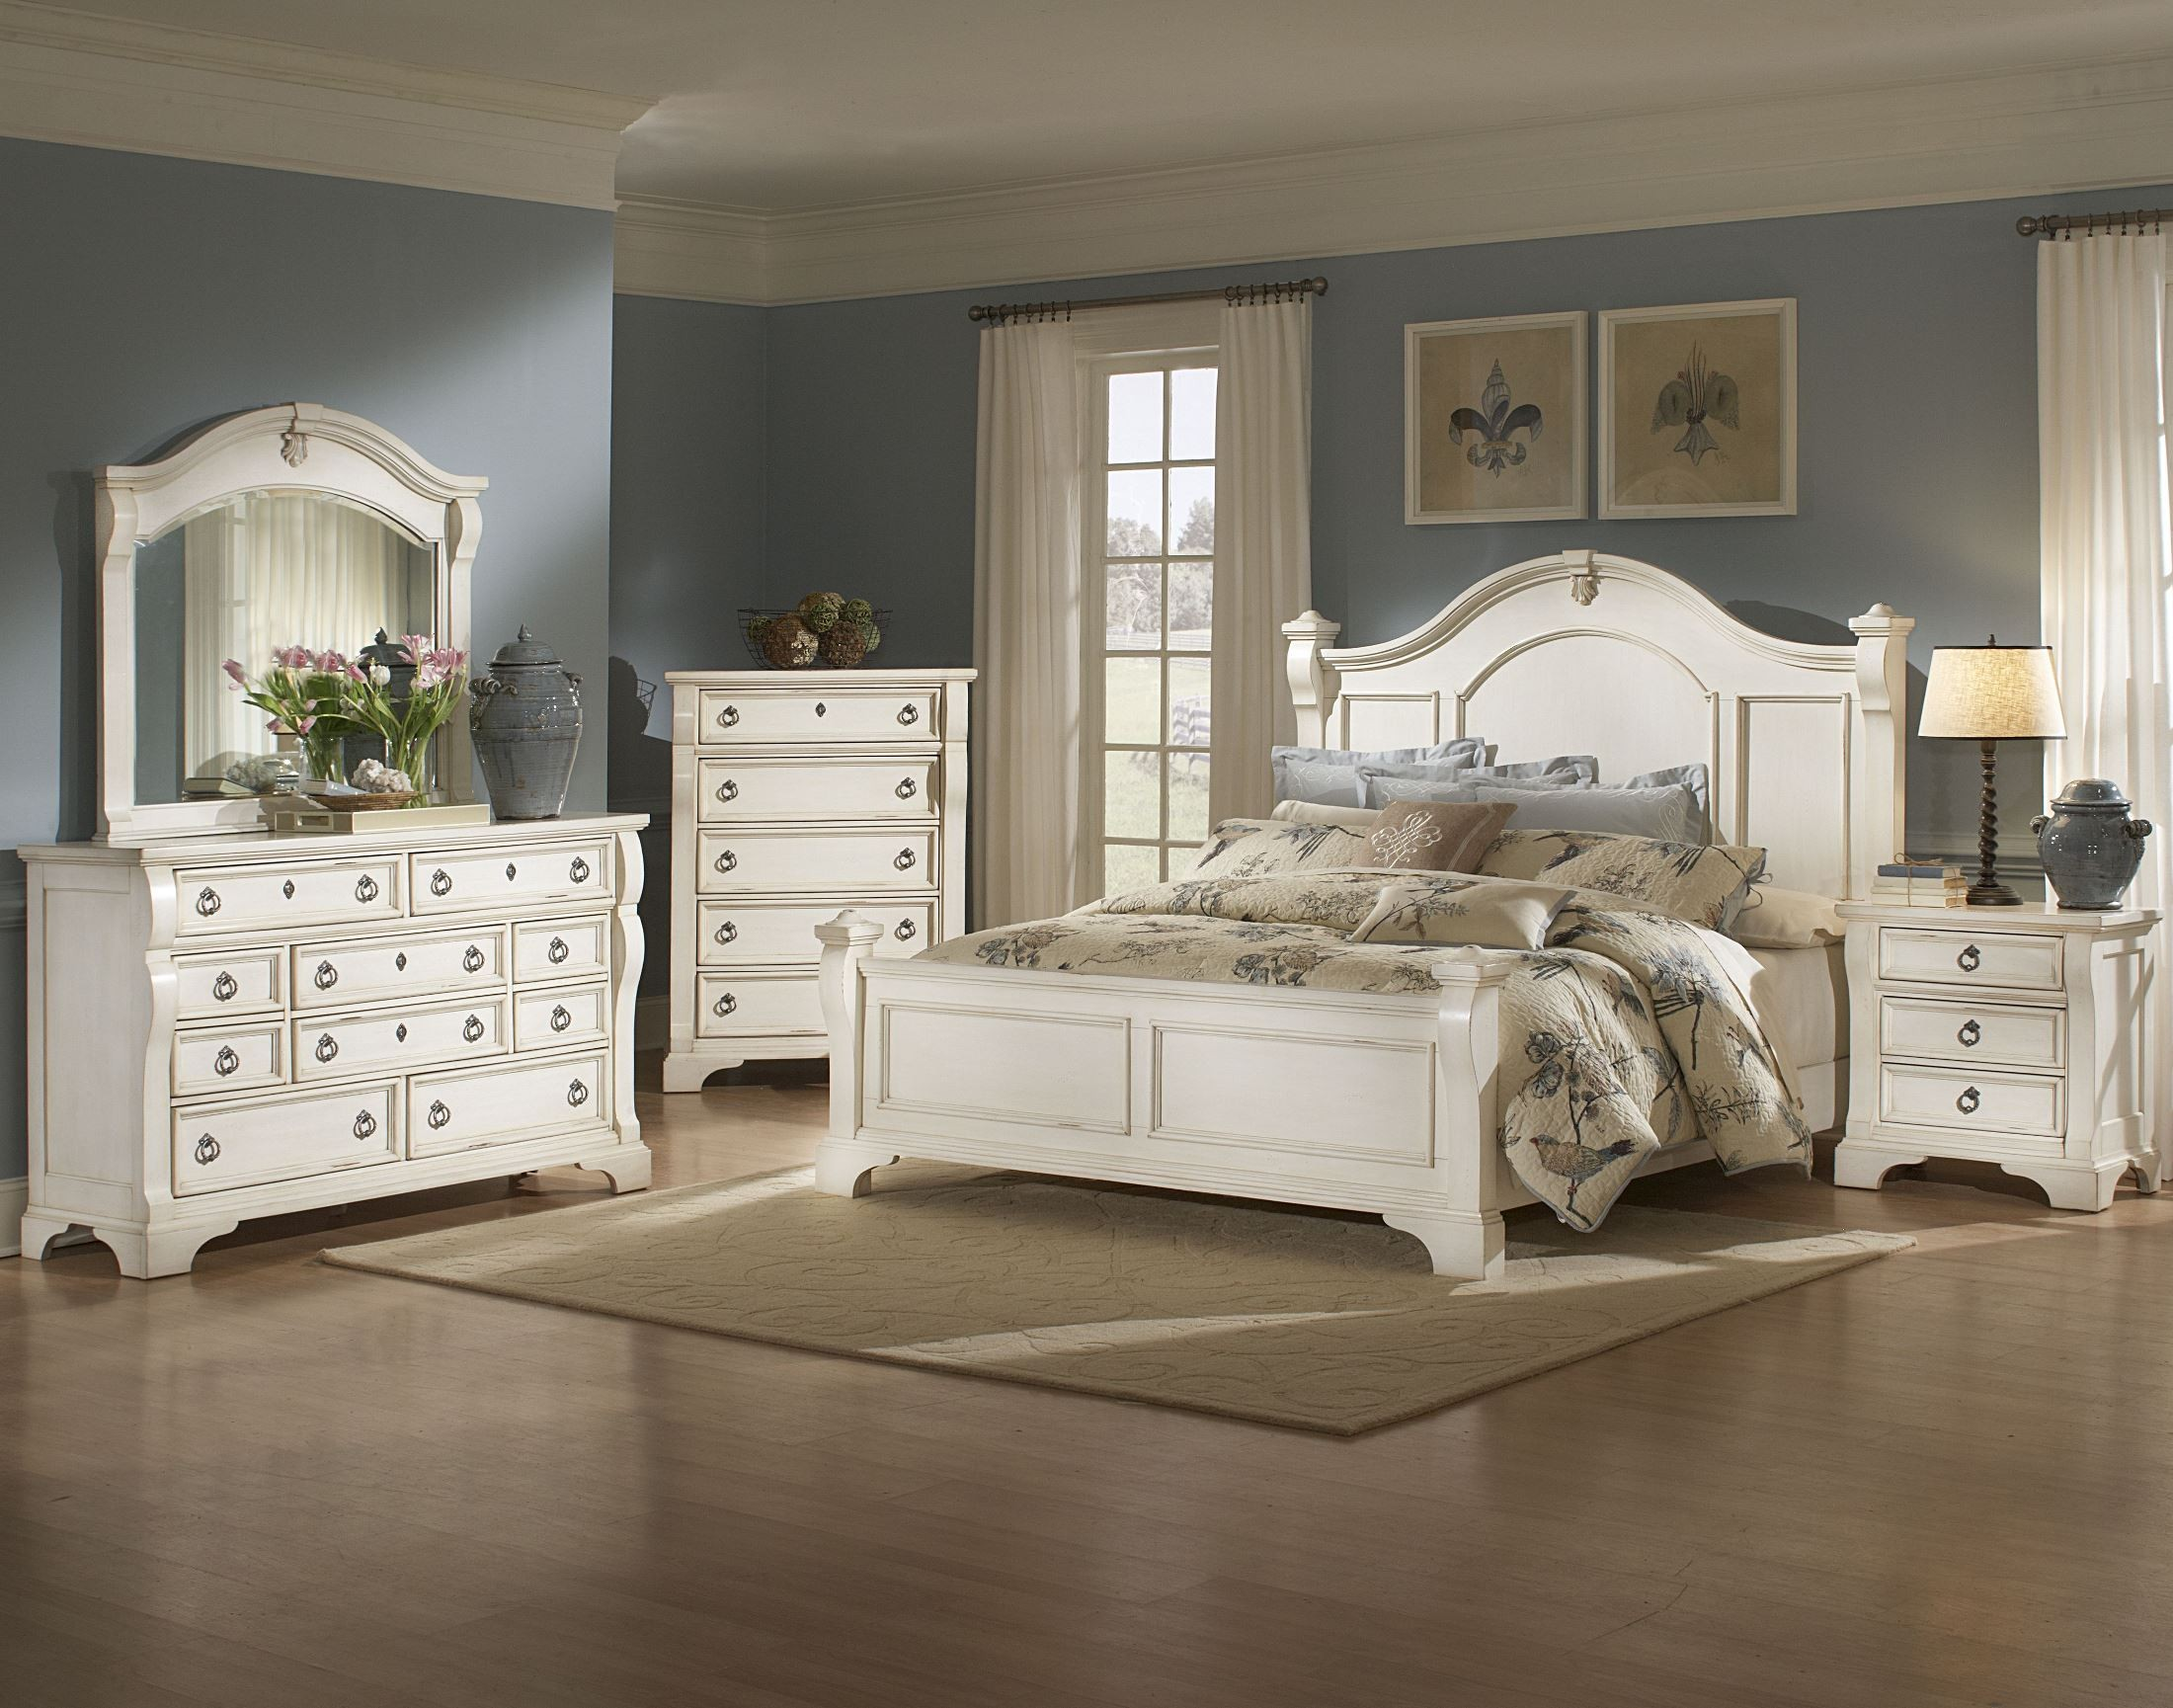 Heirloom White Queen Poster Bed From American Woodcrafters 2910 50pos Coleman Furniture